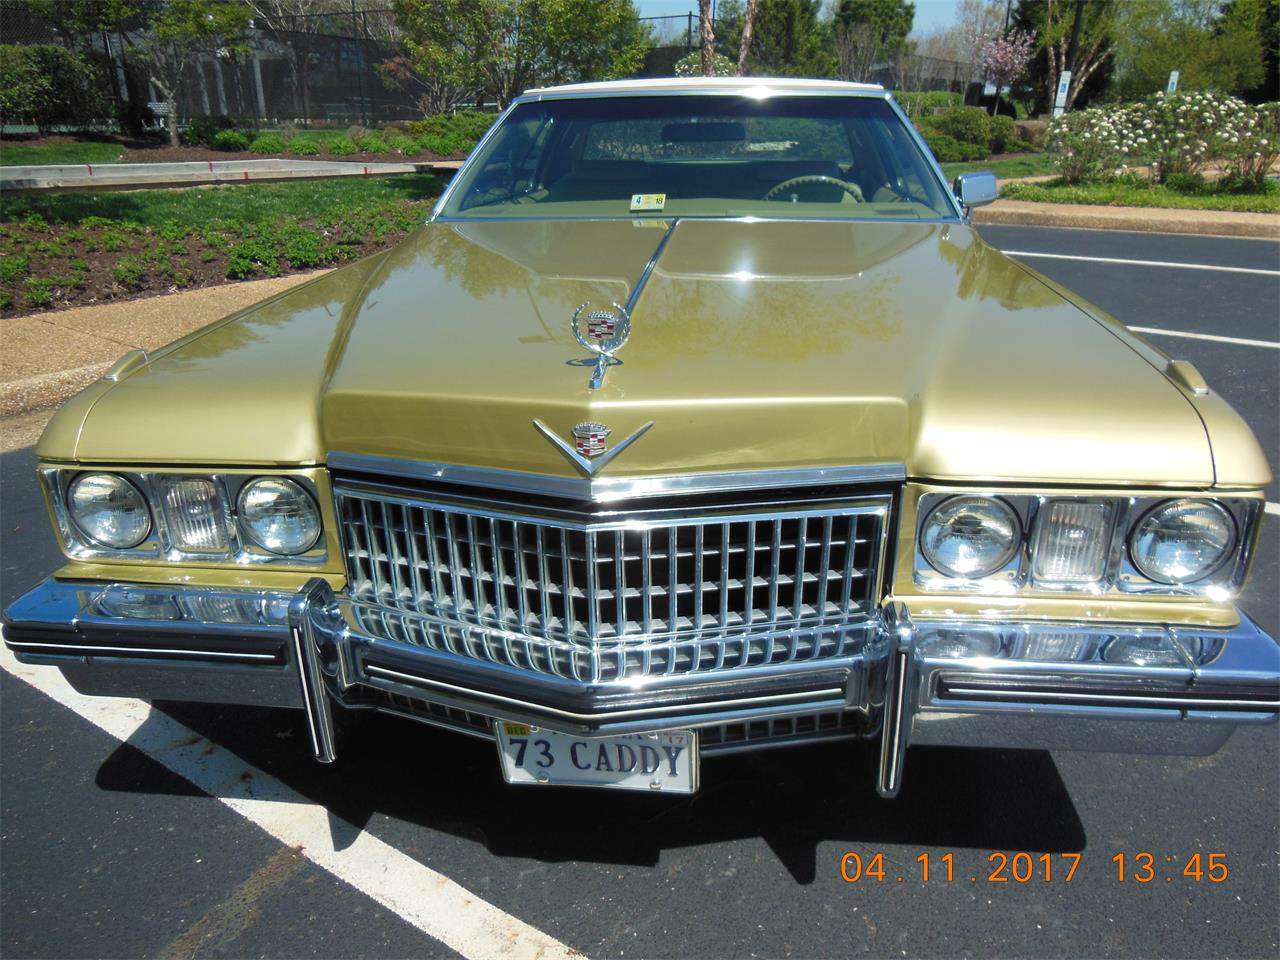 Large Picture of Classic '73 Cadillac Coupe DeVille located in Williamsburg Virginia - $16,990.00 Offered by a Private Seller - MU04